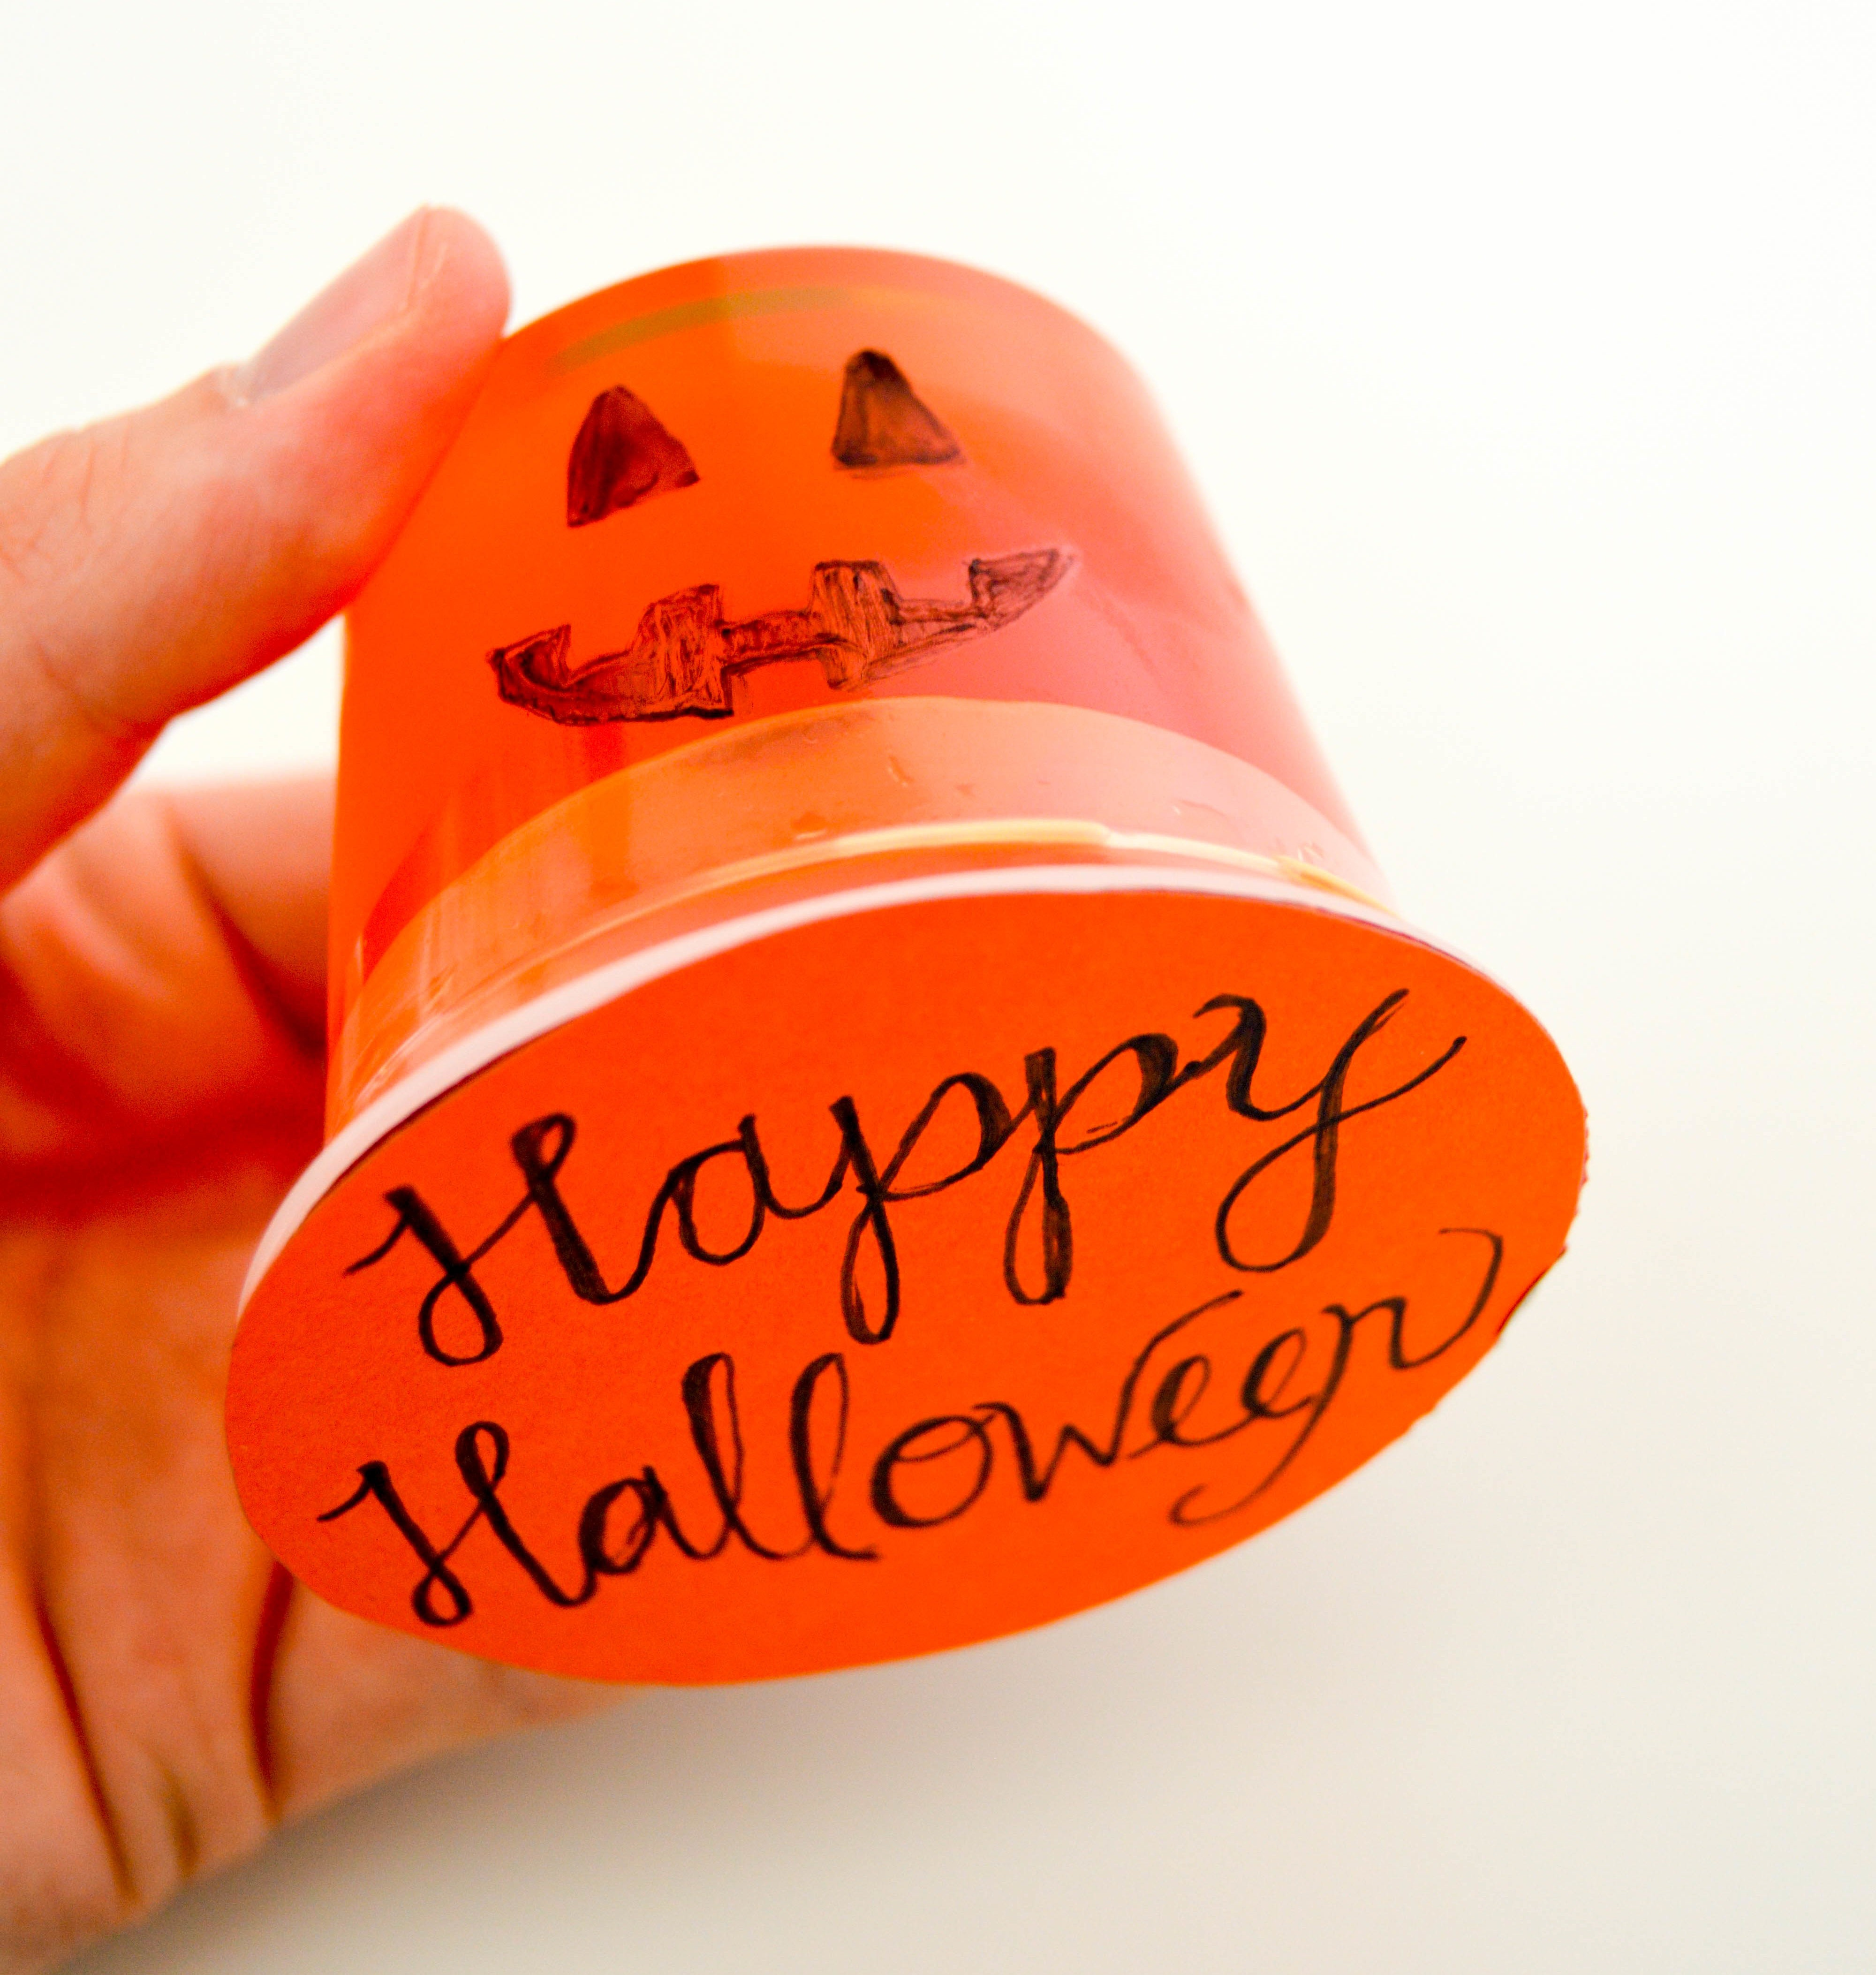 Halloween Pudding Cups & Jello Cups | Pumpkin Happy Halloween! orange jell-o cup